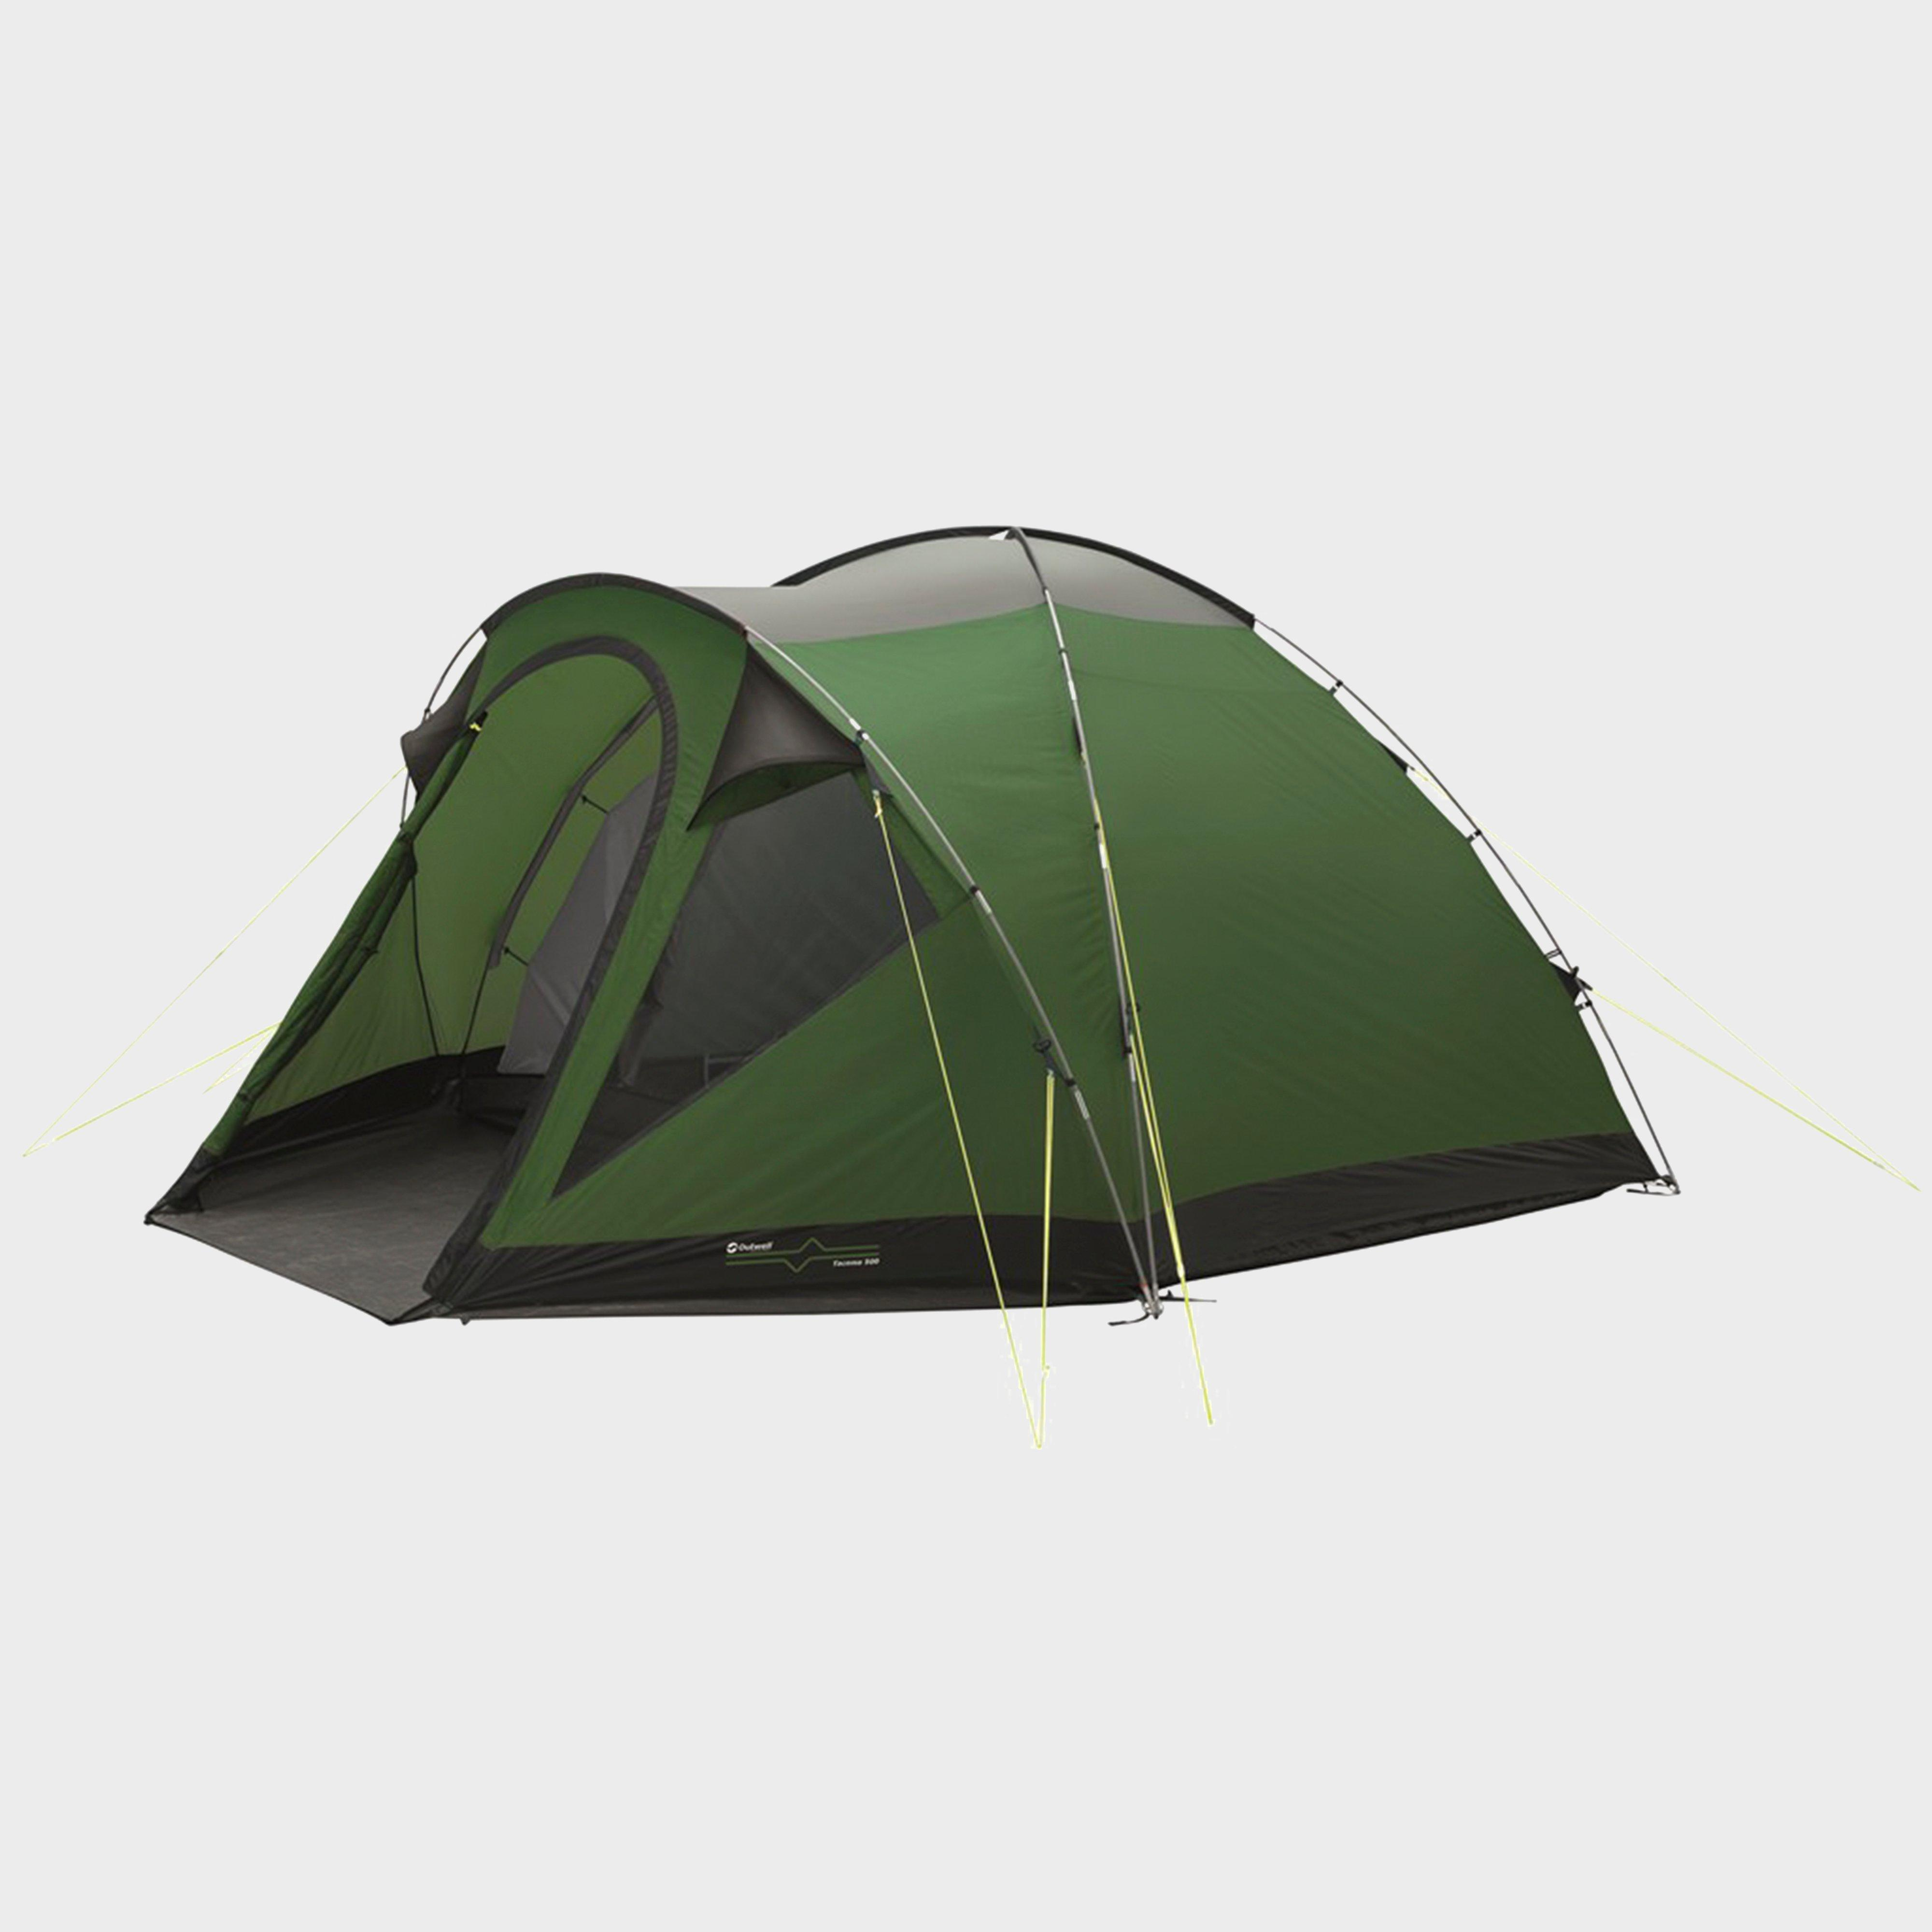 OUTWELL Tacoma 500 5 Person Tent & Outwell Tacoma 500 5 Person Tent